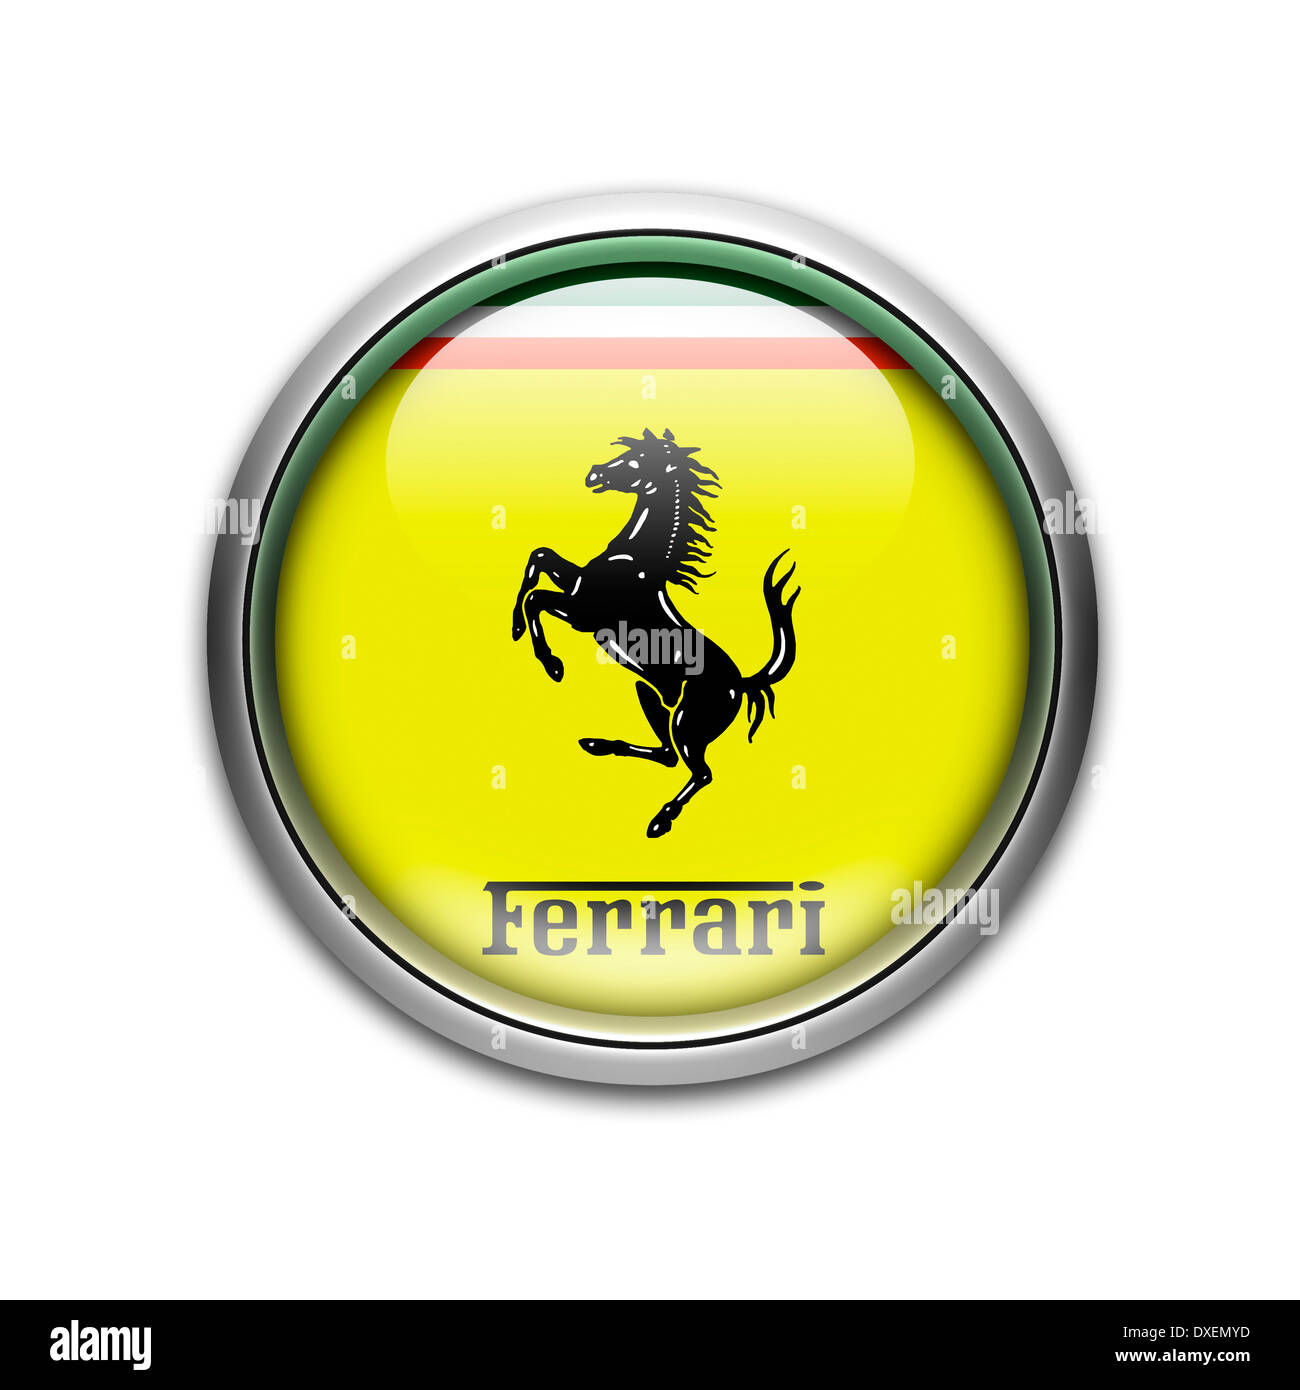 Ferrari Logo Flag Symbol Icon Emblem Stock Photo Royalty